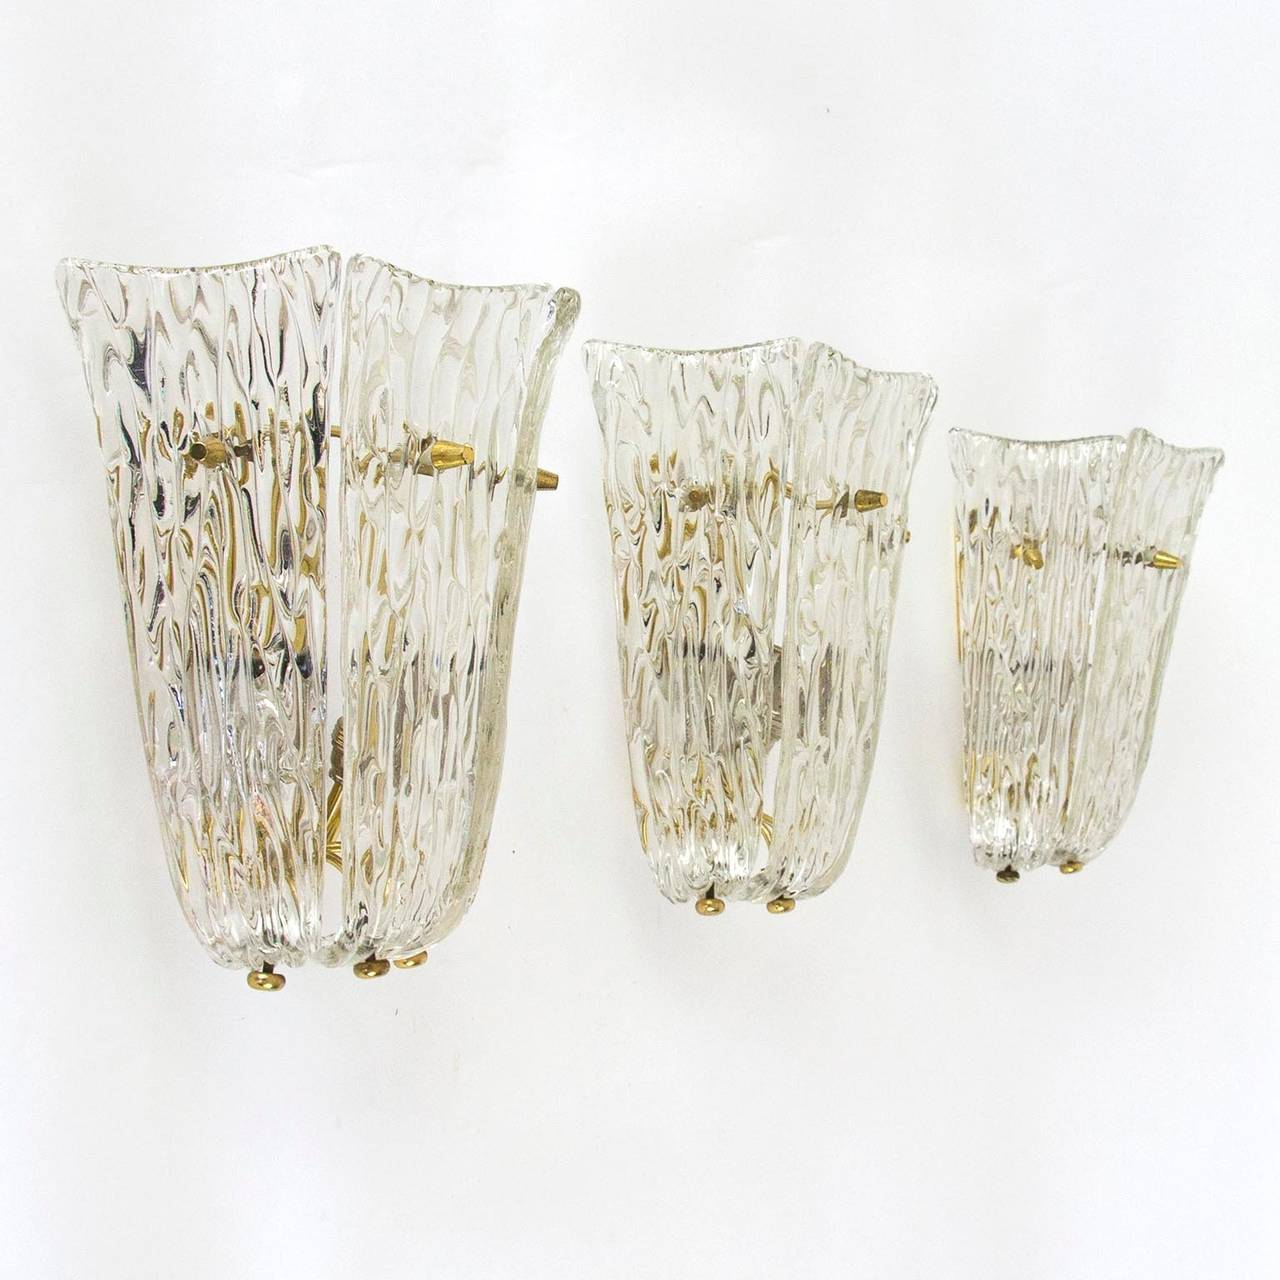 One of Three Textured Glass And Brass Wall Sconces by J.T. Kalmar, 1950s In Excellent Condition For Sale In Graz, AT